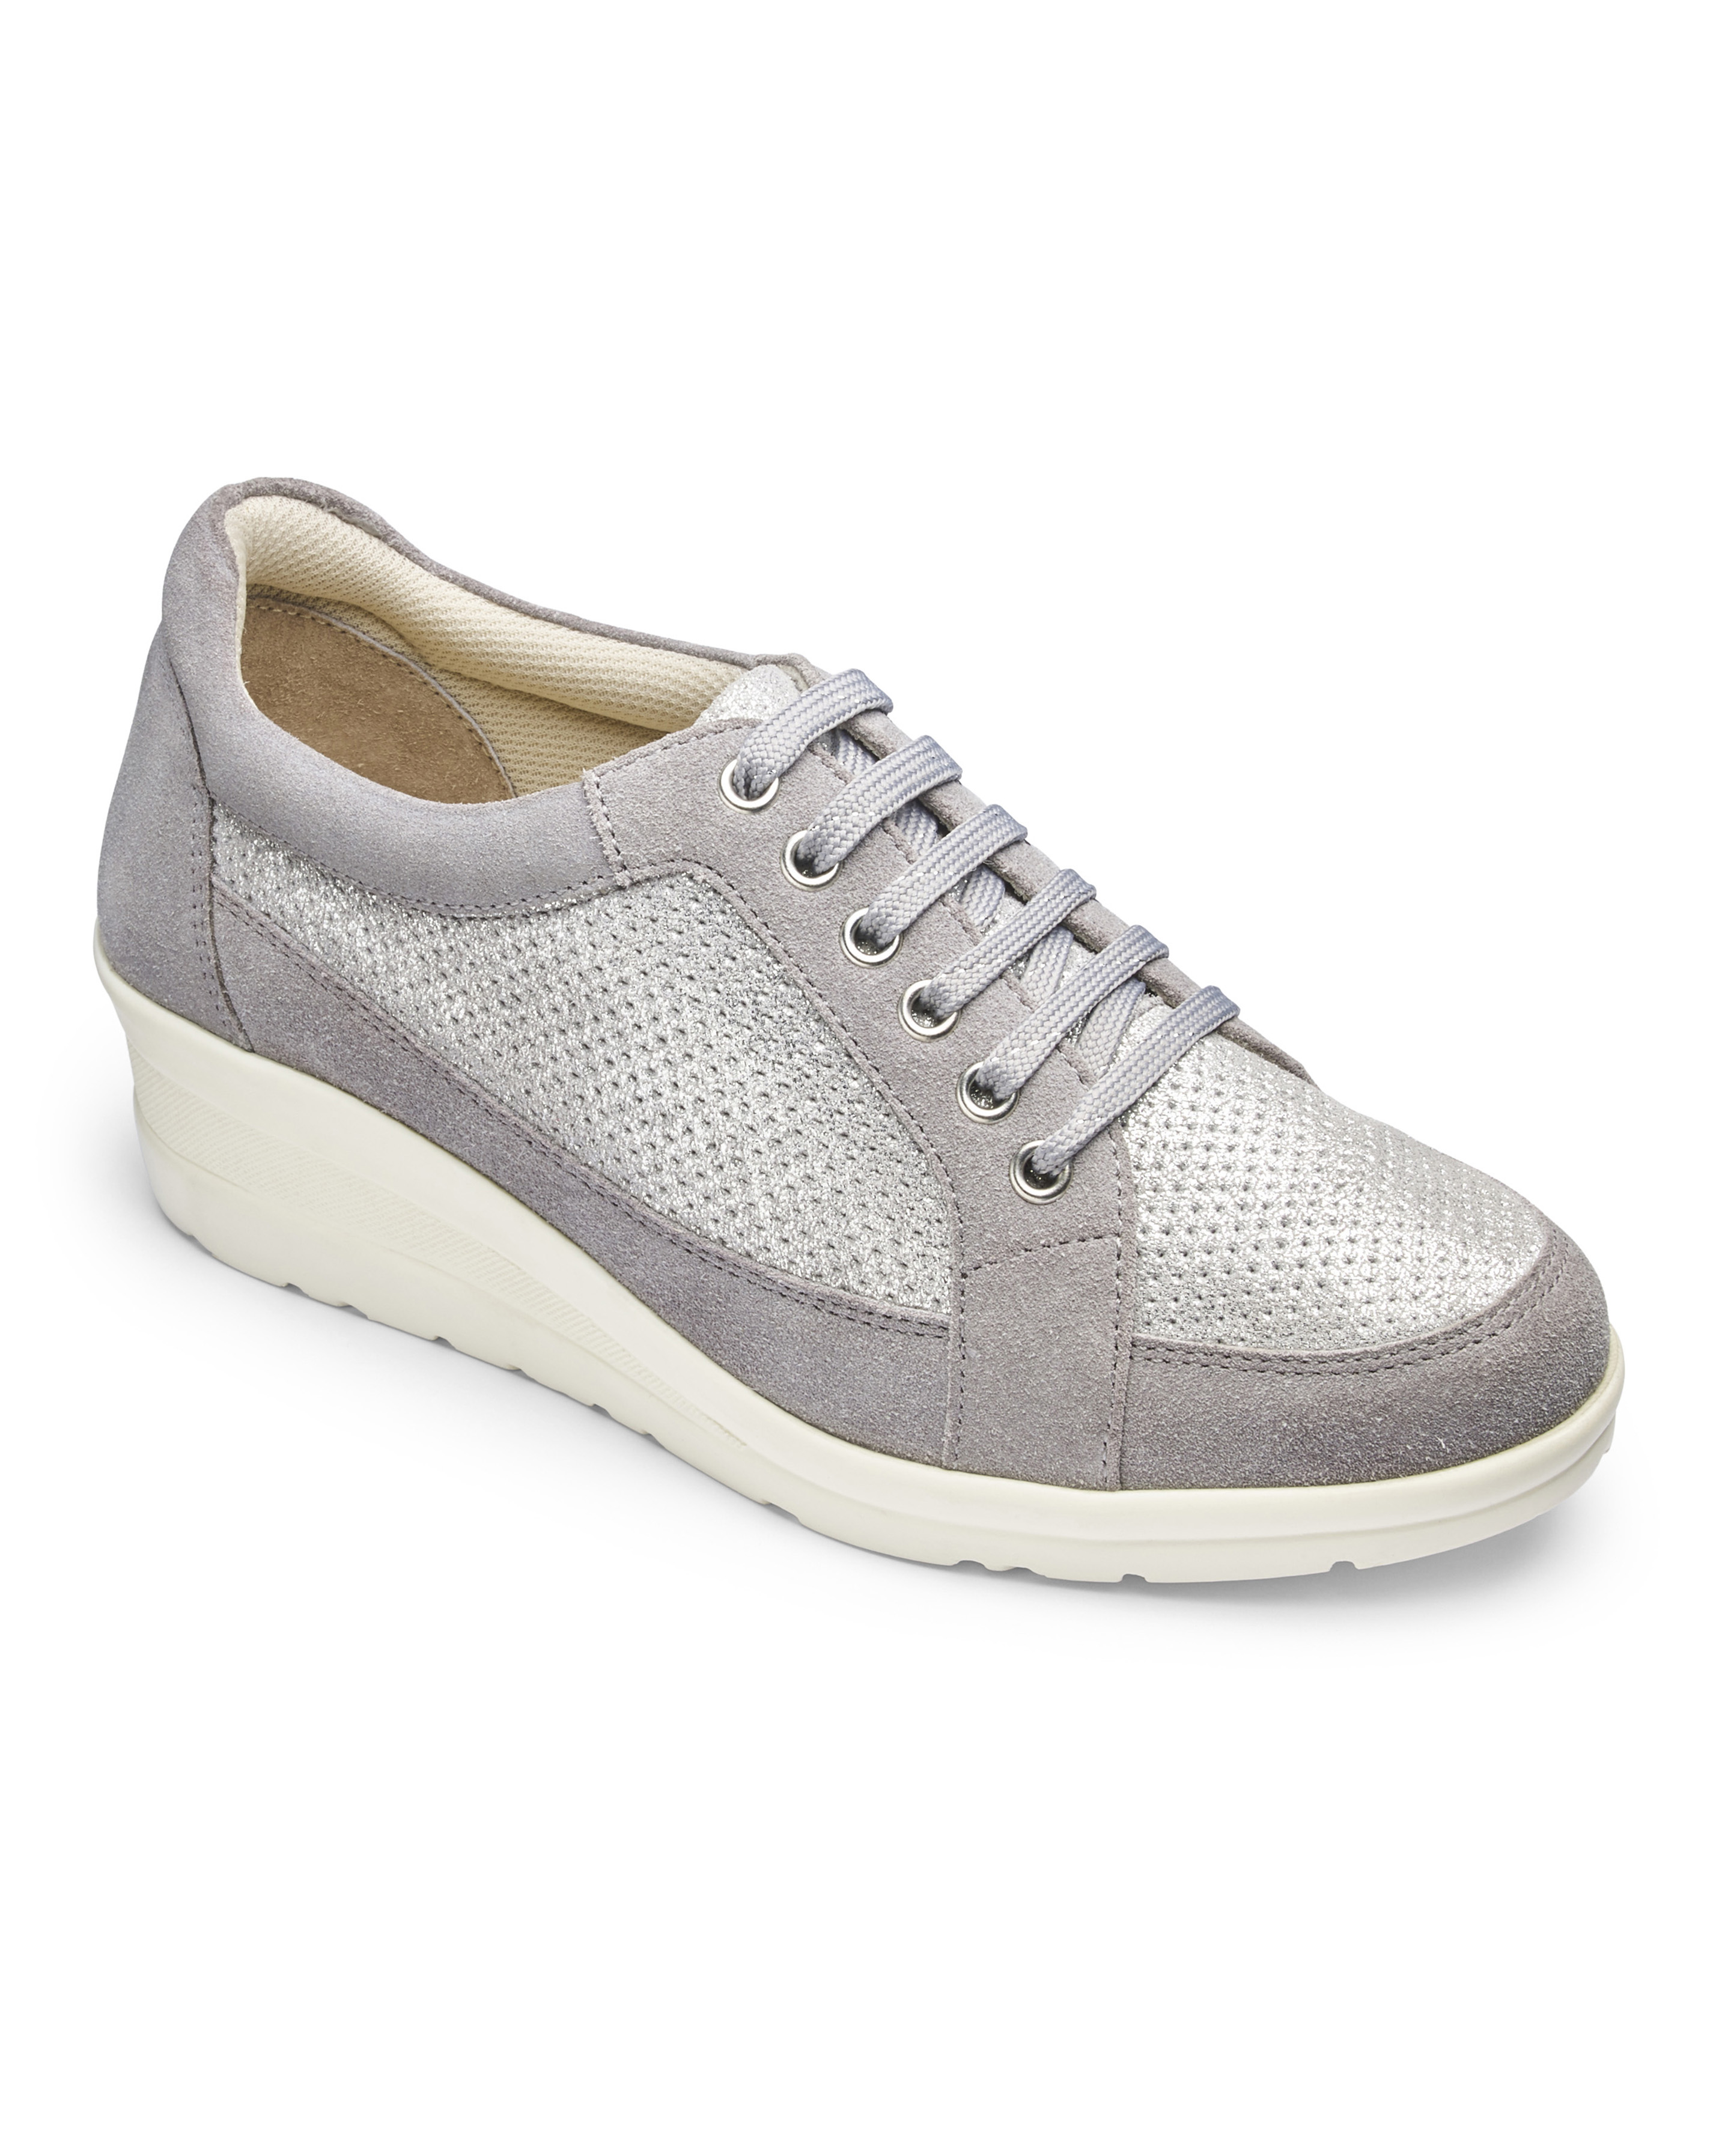 Womens-Trainers-Wedge-Heel-Soft-Leather-Lace-Up-Shoes-JD-Williams thumbnail 11